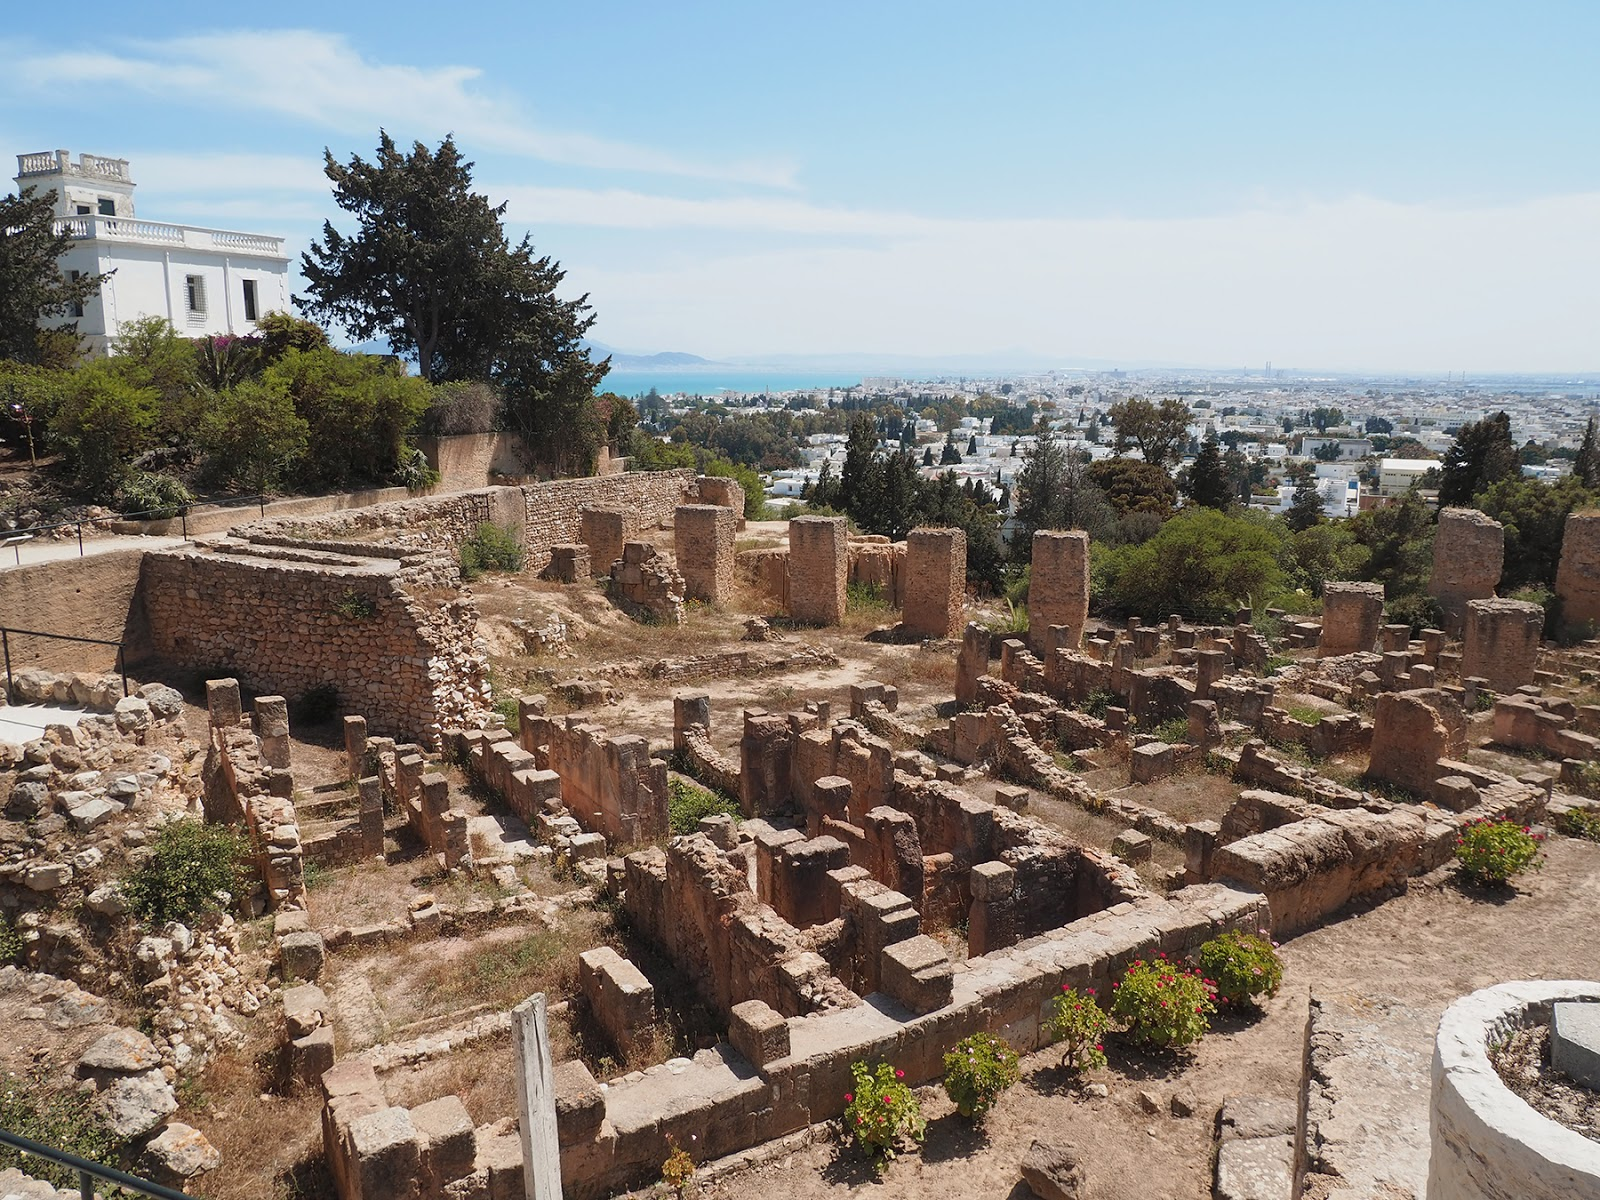 Euriental | luxury travel & style | Carthage, weekend guide to Tunisia